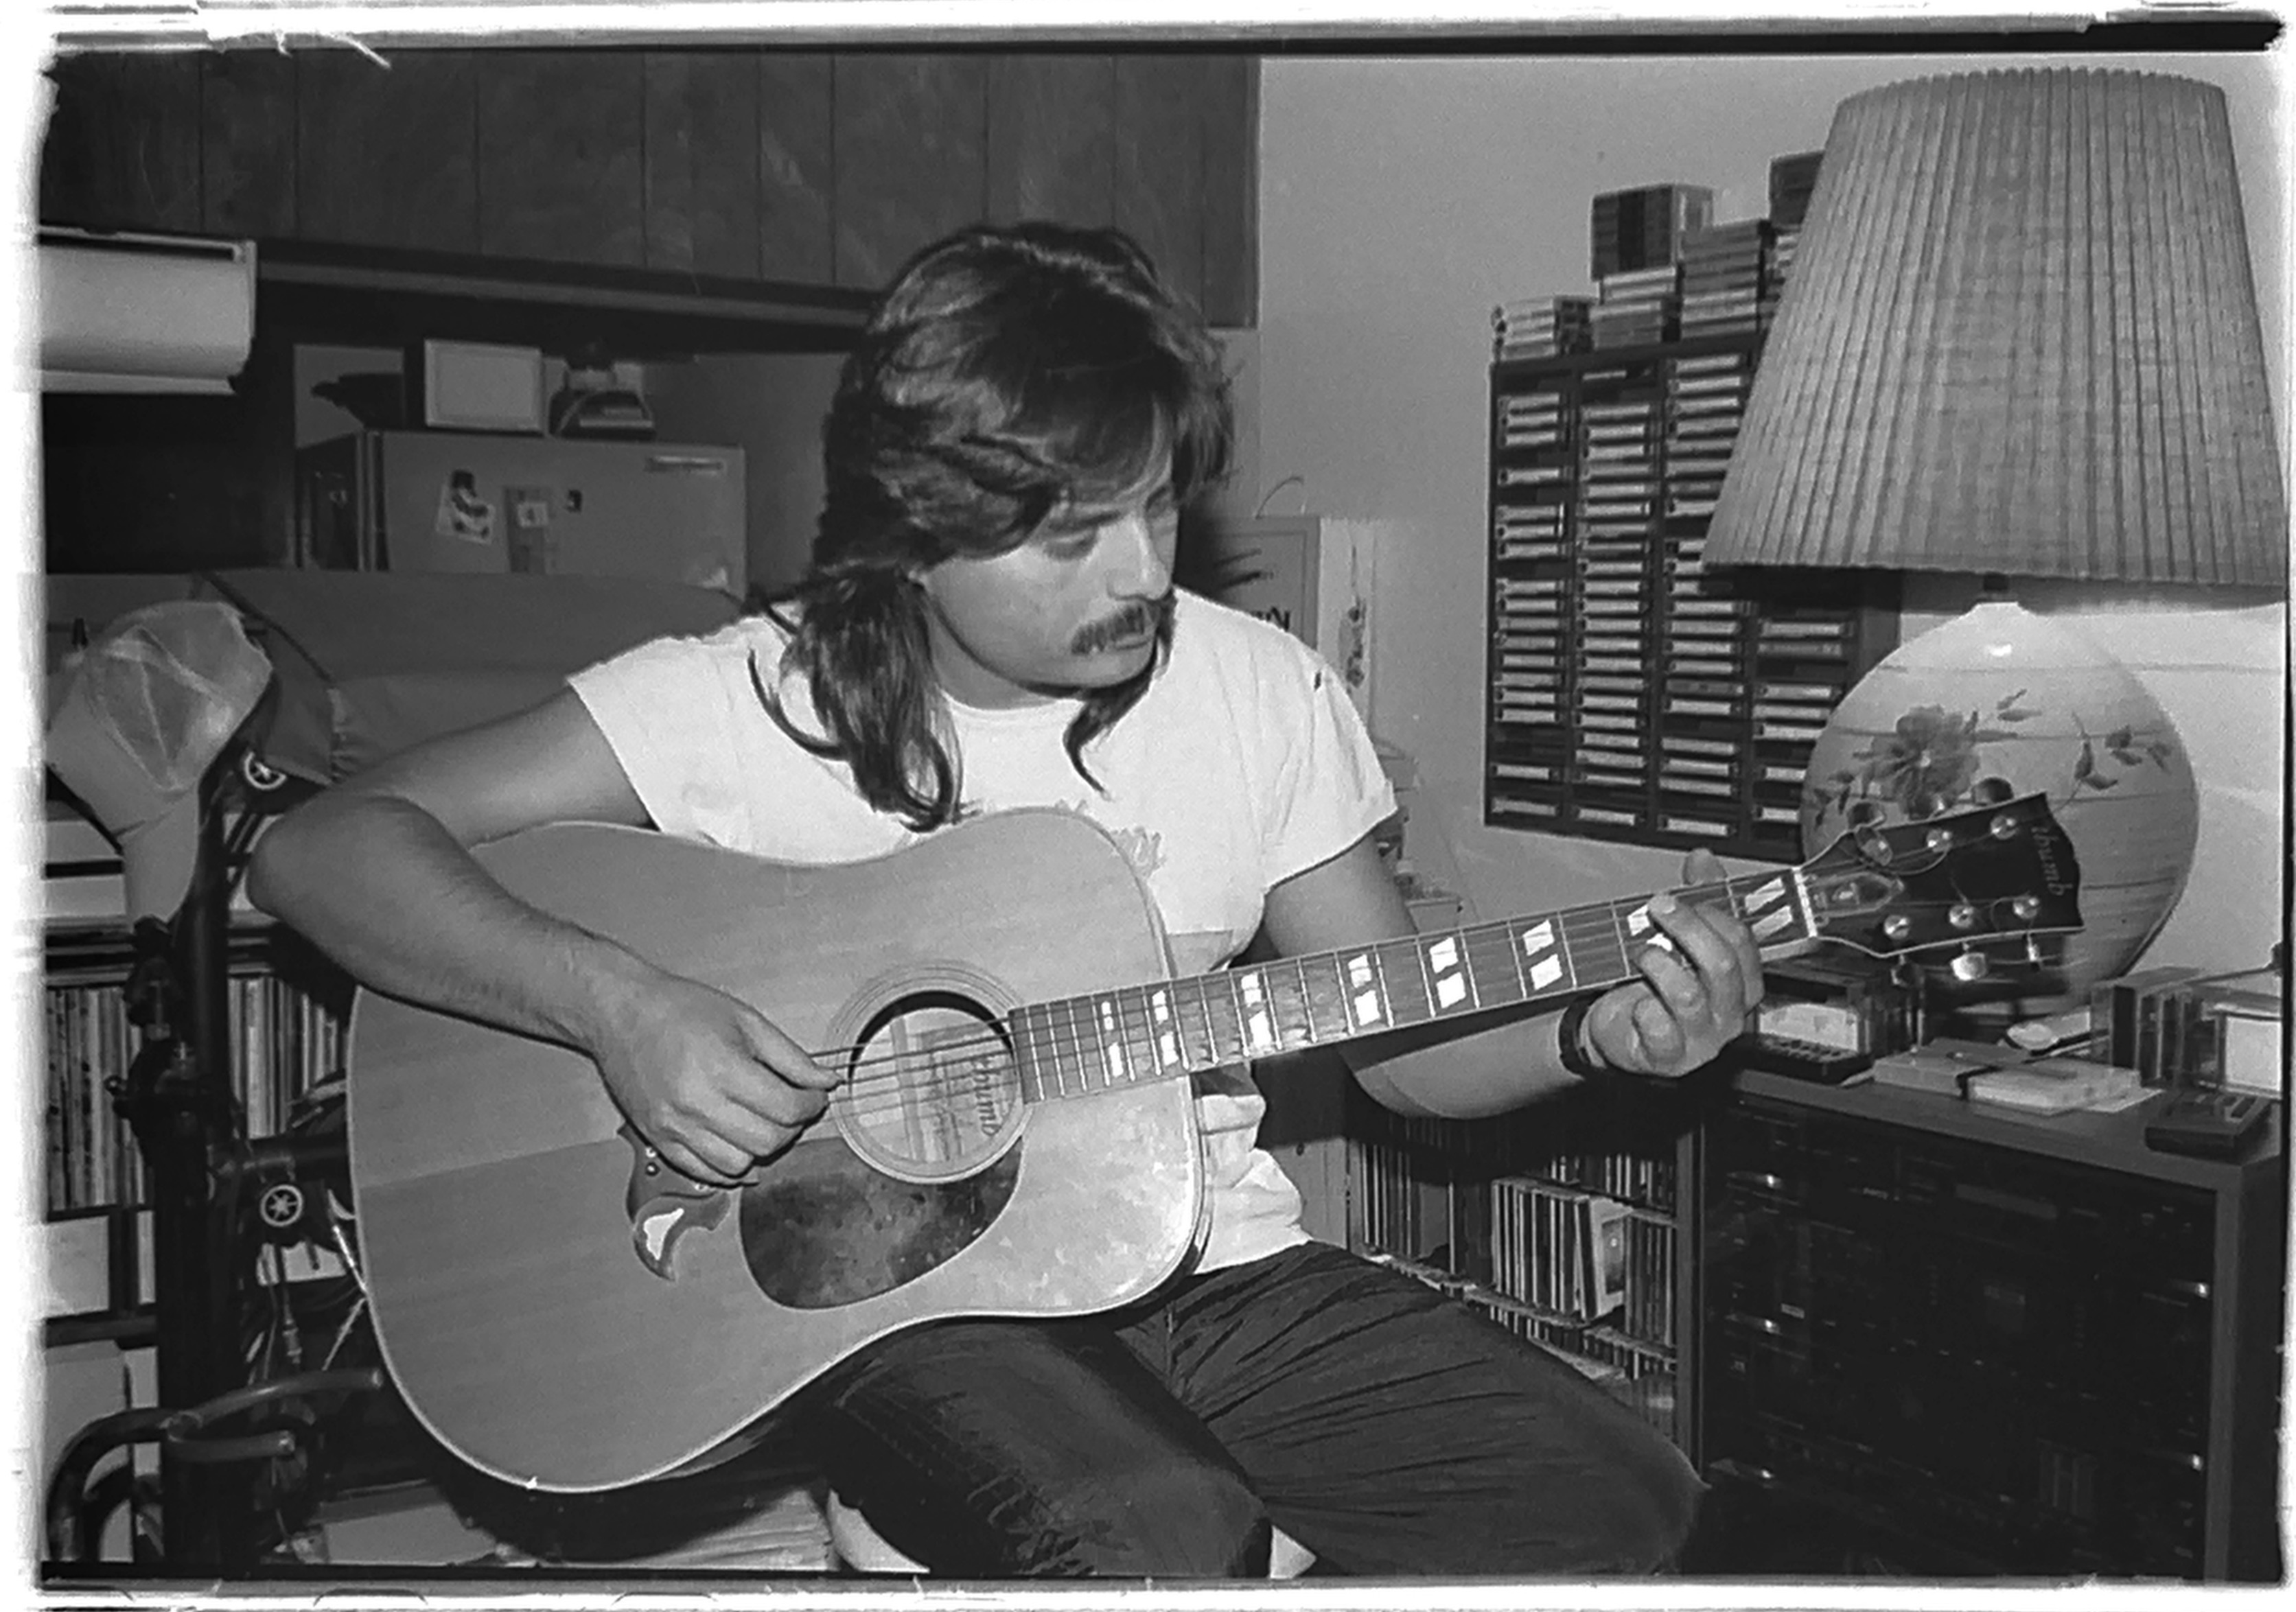 1990-06 COMM217 BW Photography - Self-Portrait- Guitar Dude